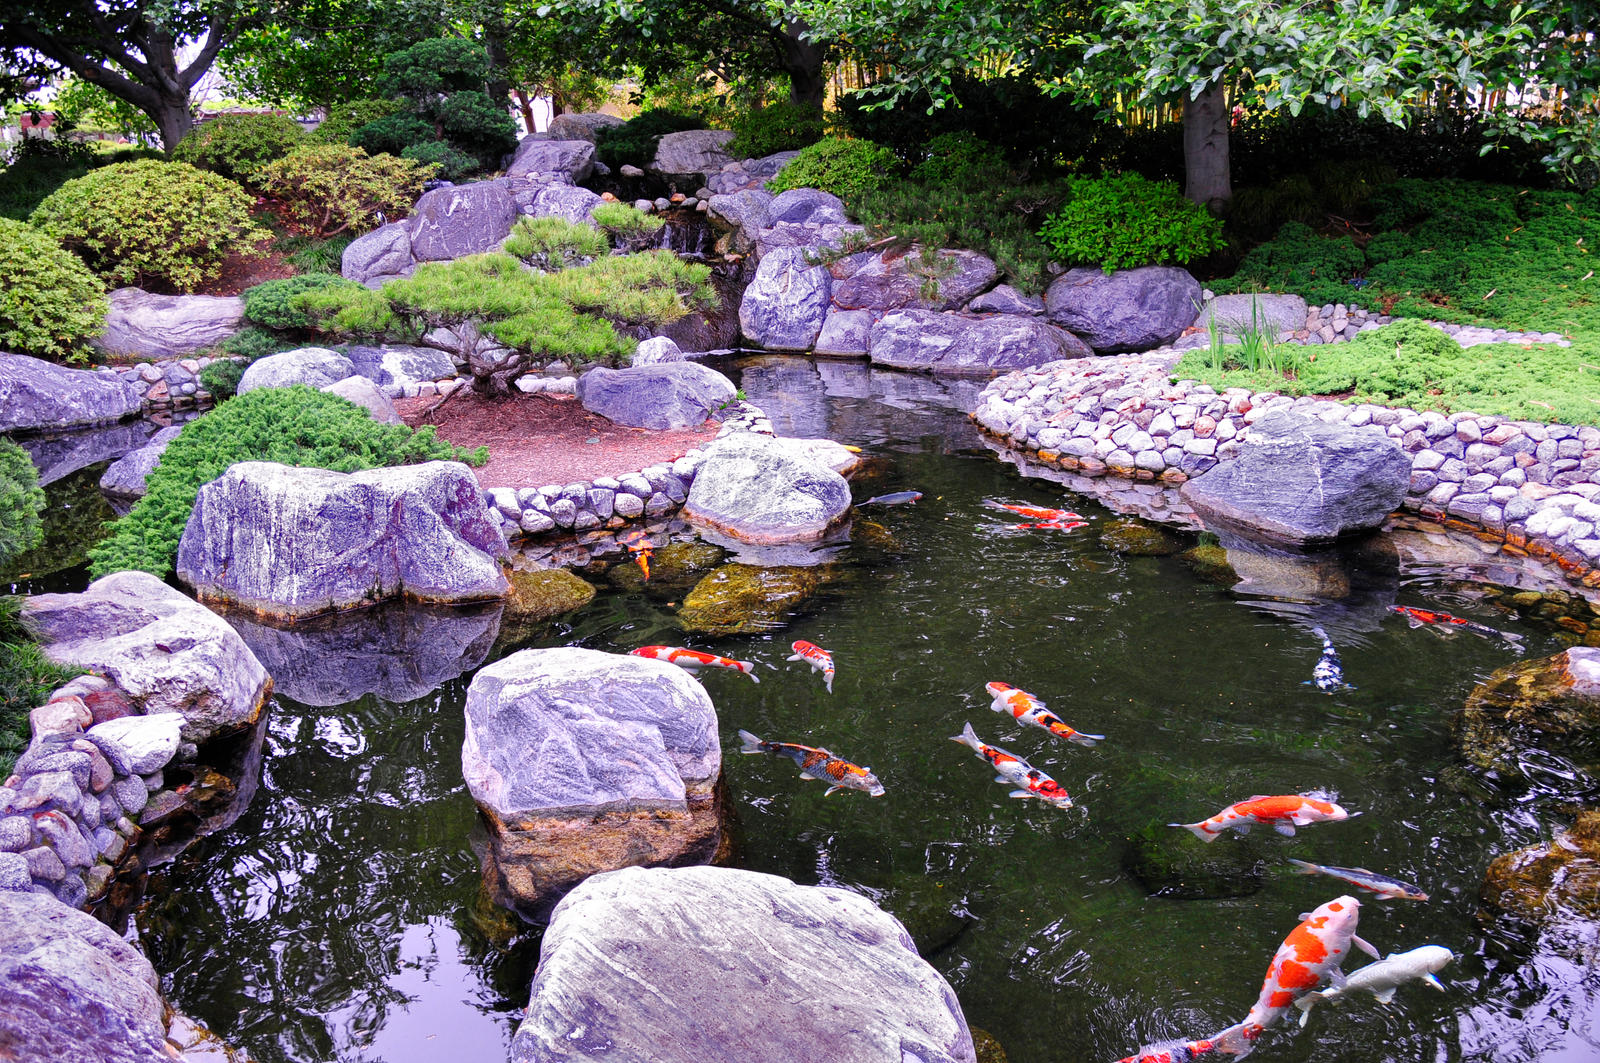 Japanese garden tranquil koi by andyserrano on deviantart for Japanese garden san jose koi fish